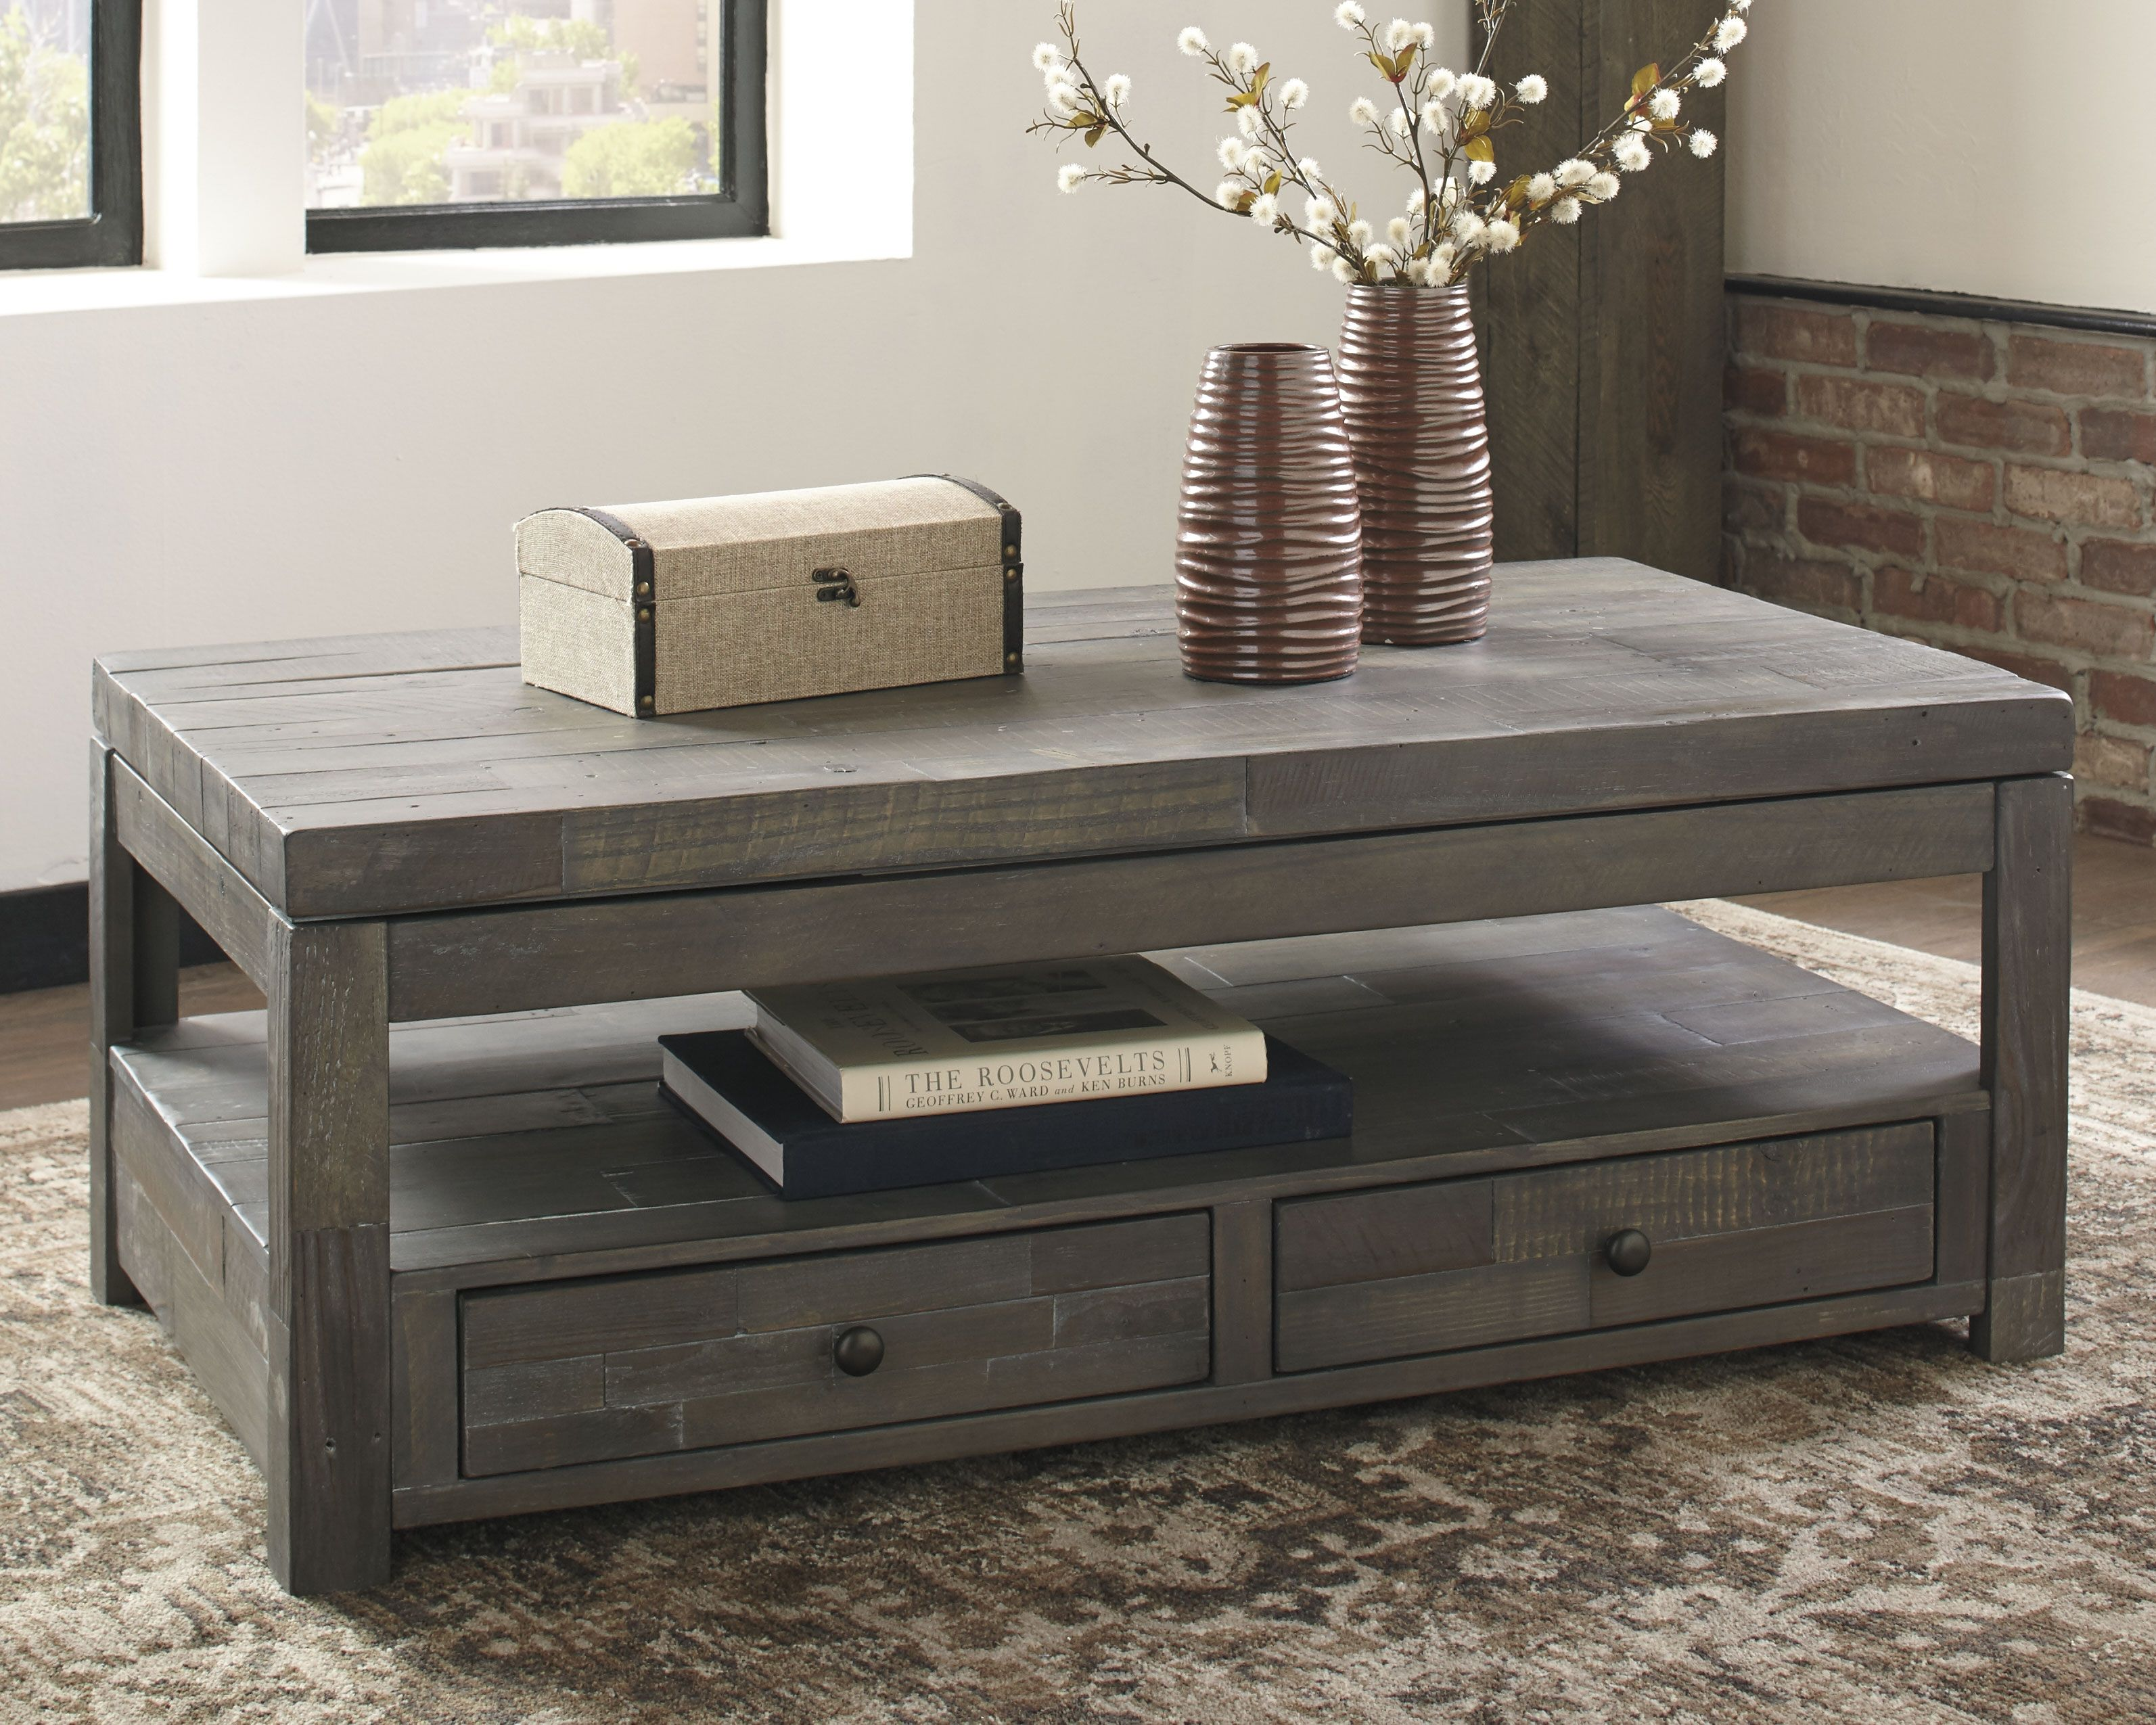 Daybrook Coffee Table With Lift Top Gray Coffee Table Grey Cool Coffee Tables Coffee Table [ 2550 x 3187 Pixel ]